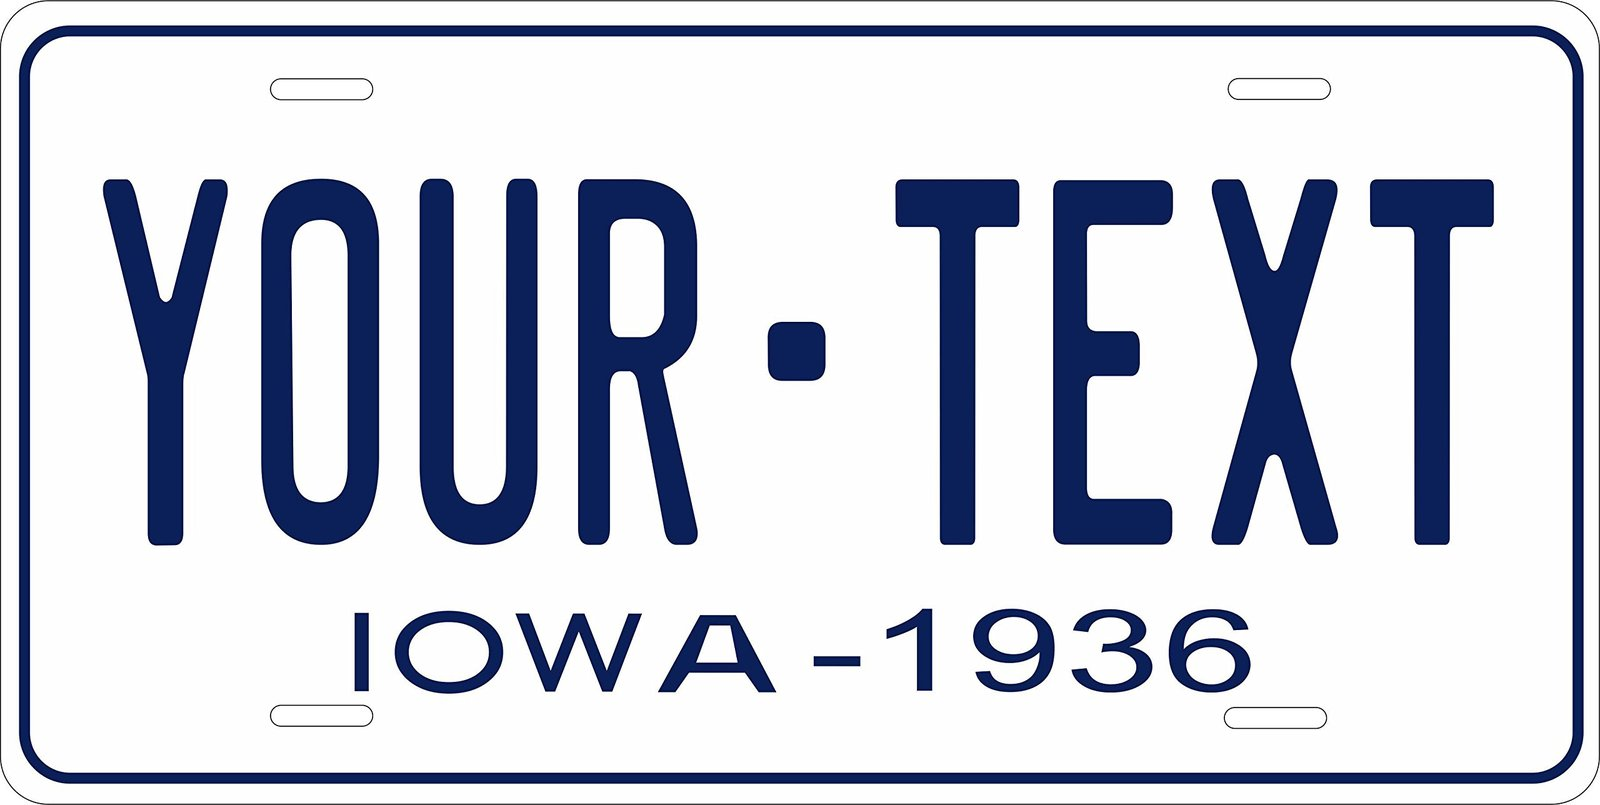 Iowa 1936 Personalized Tag Vehicle Car Auto License Plate